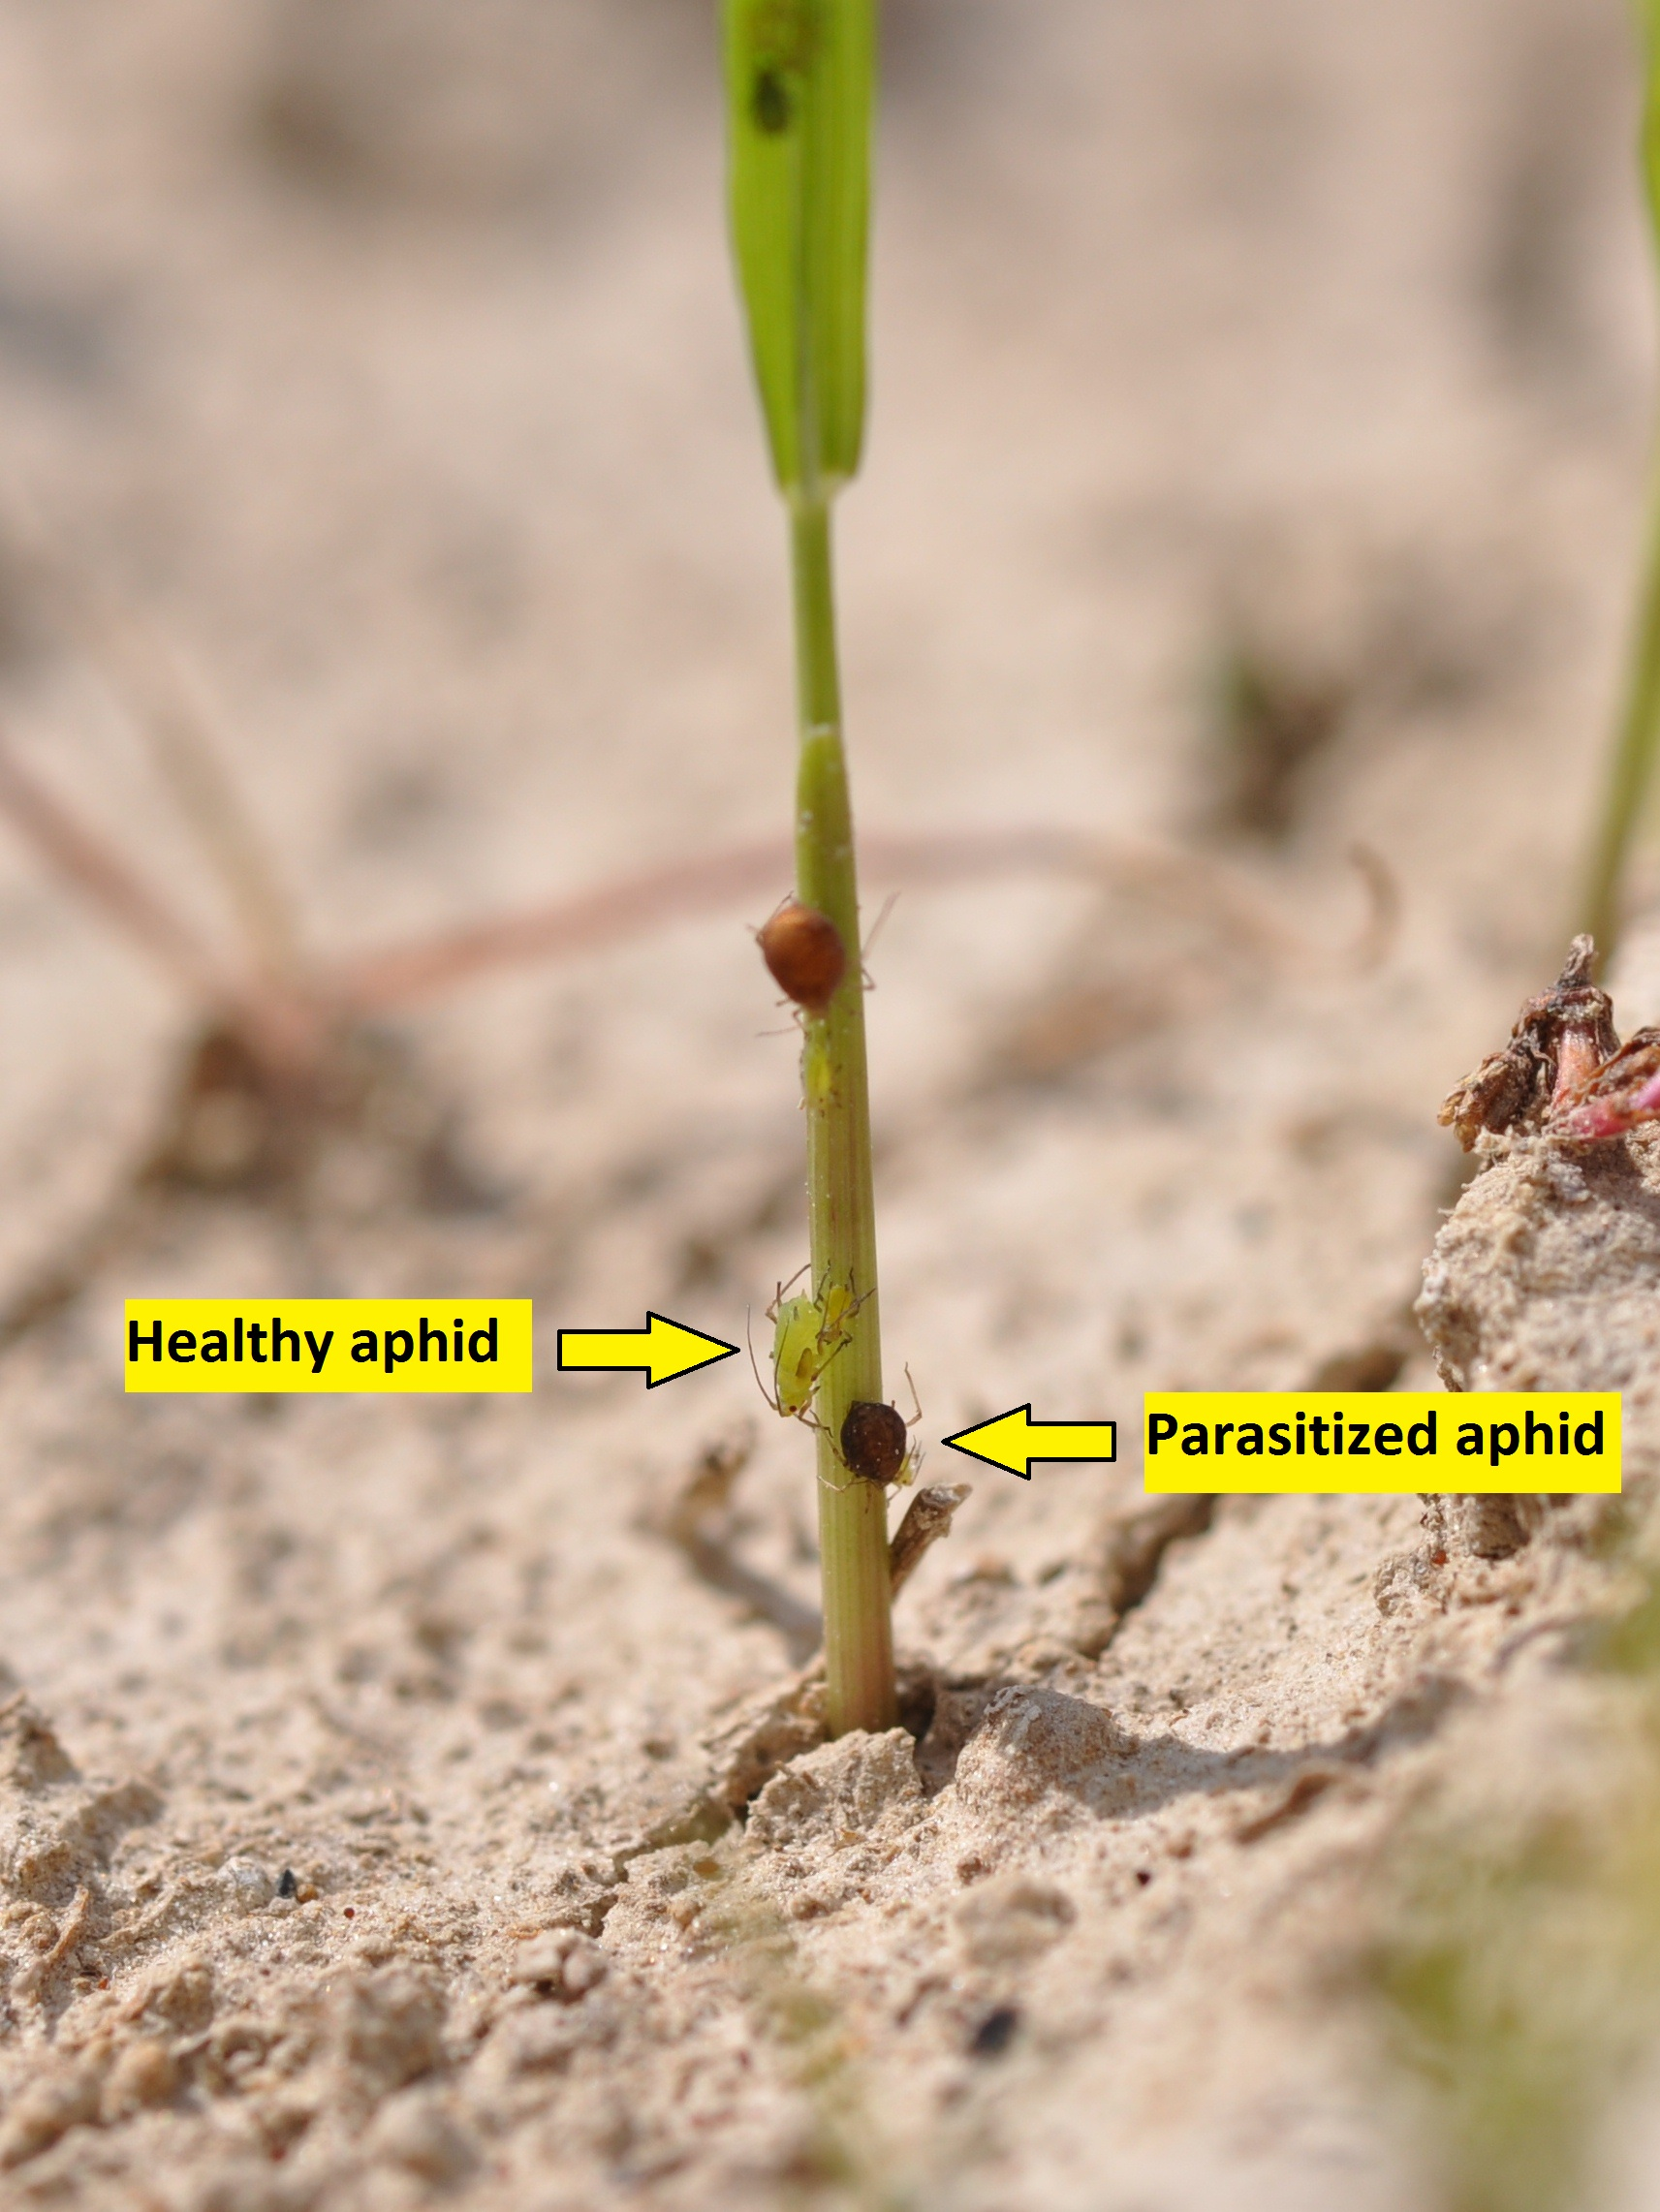 Parasitized and healthy aphids on a rice leaf.